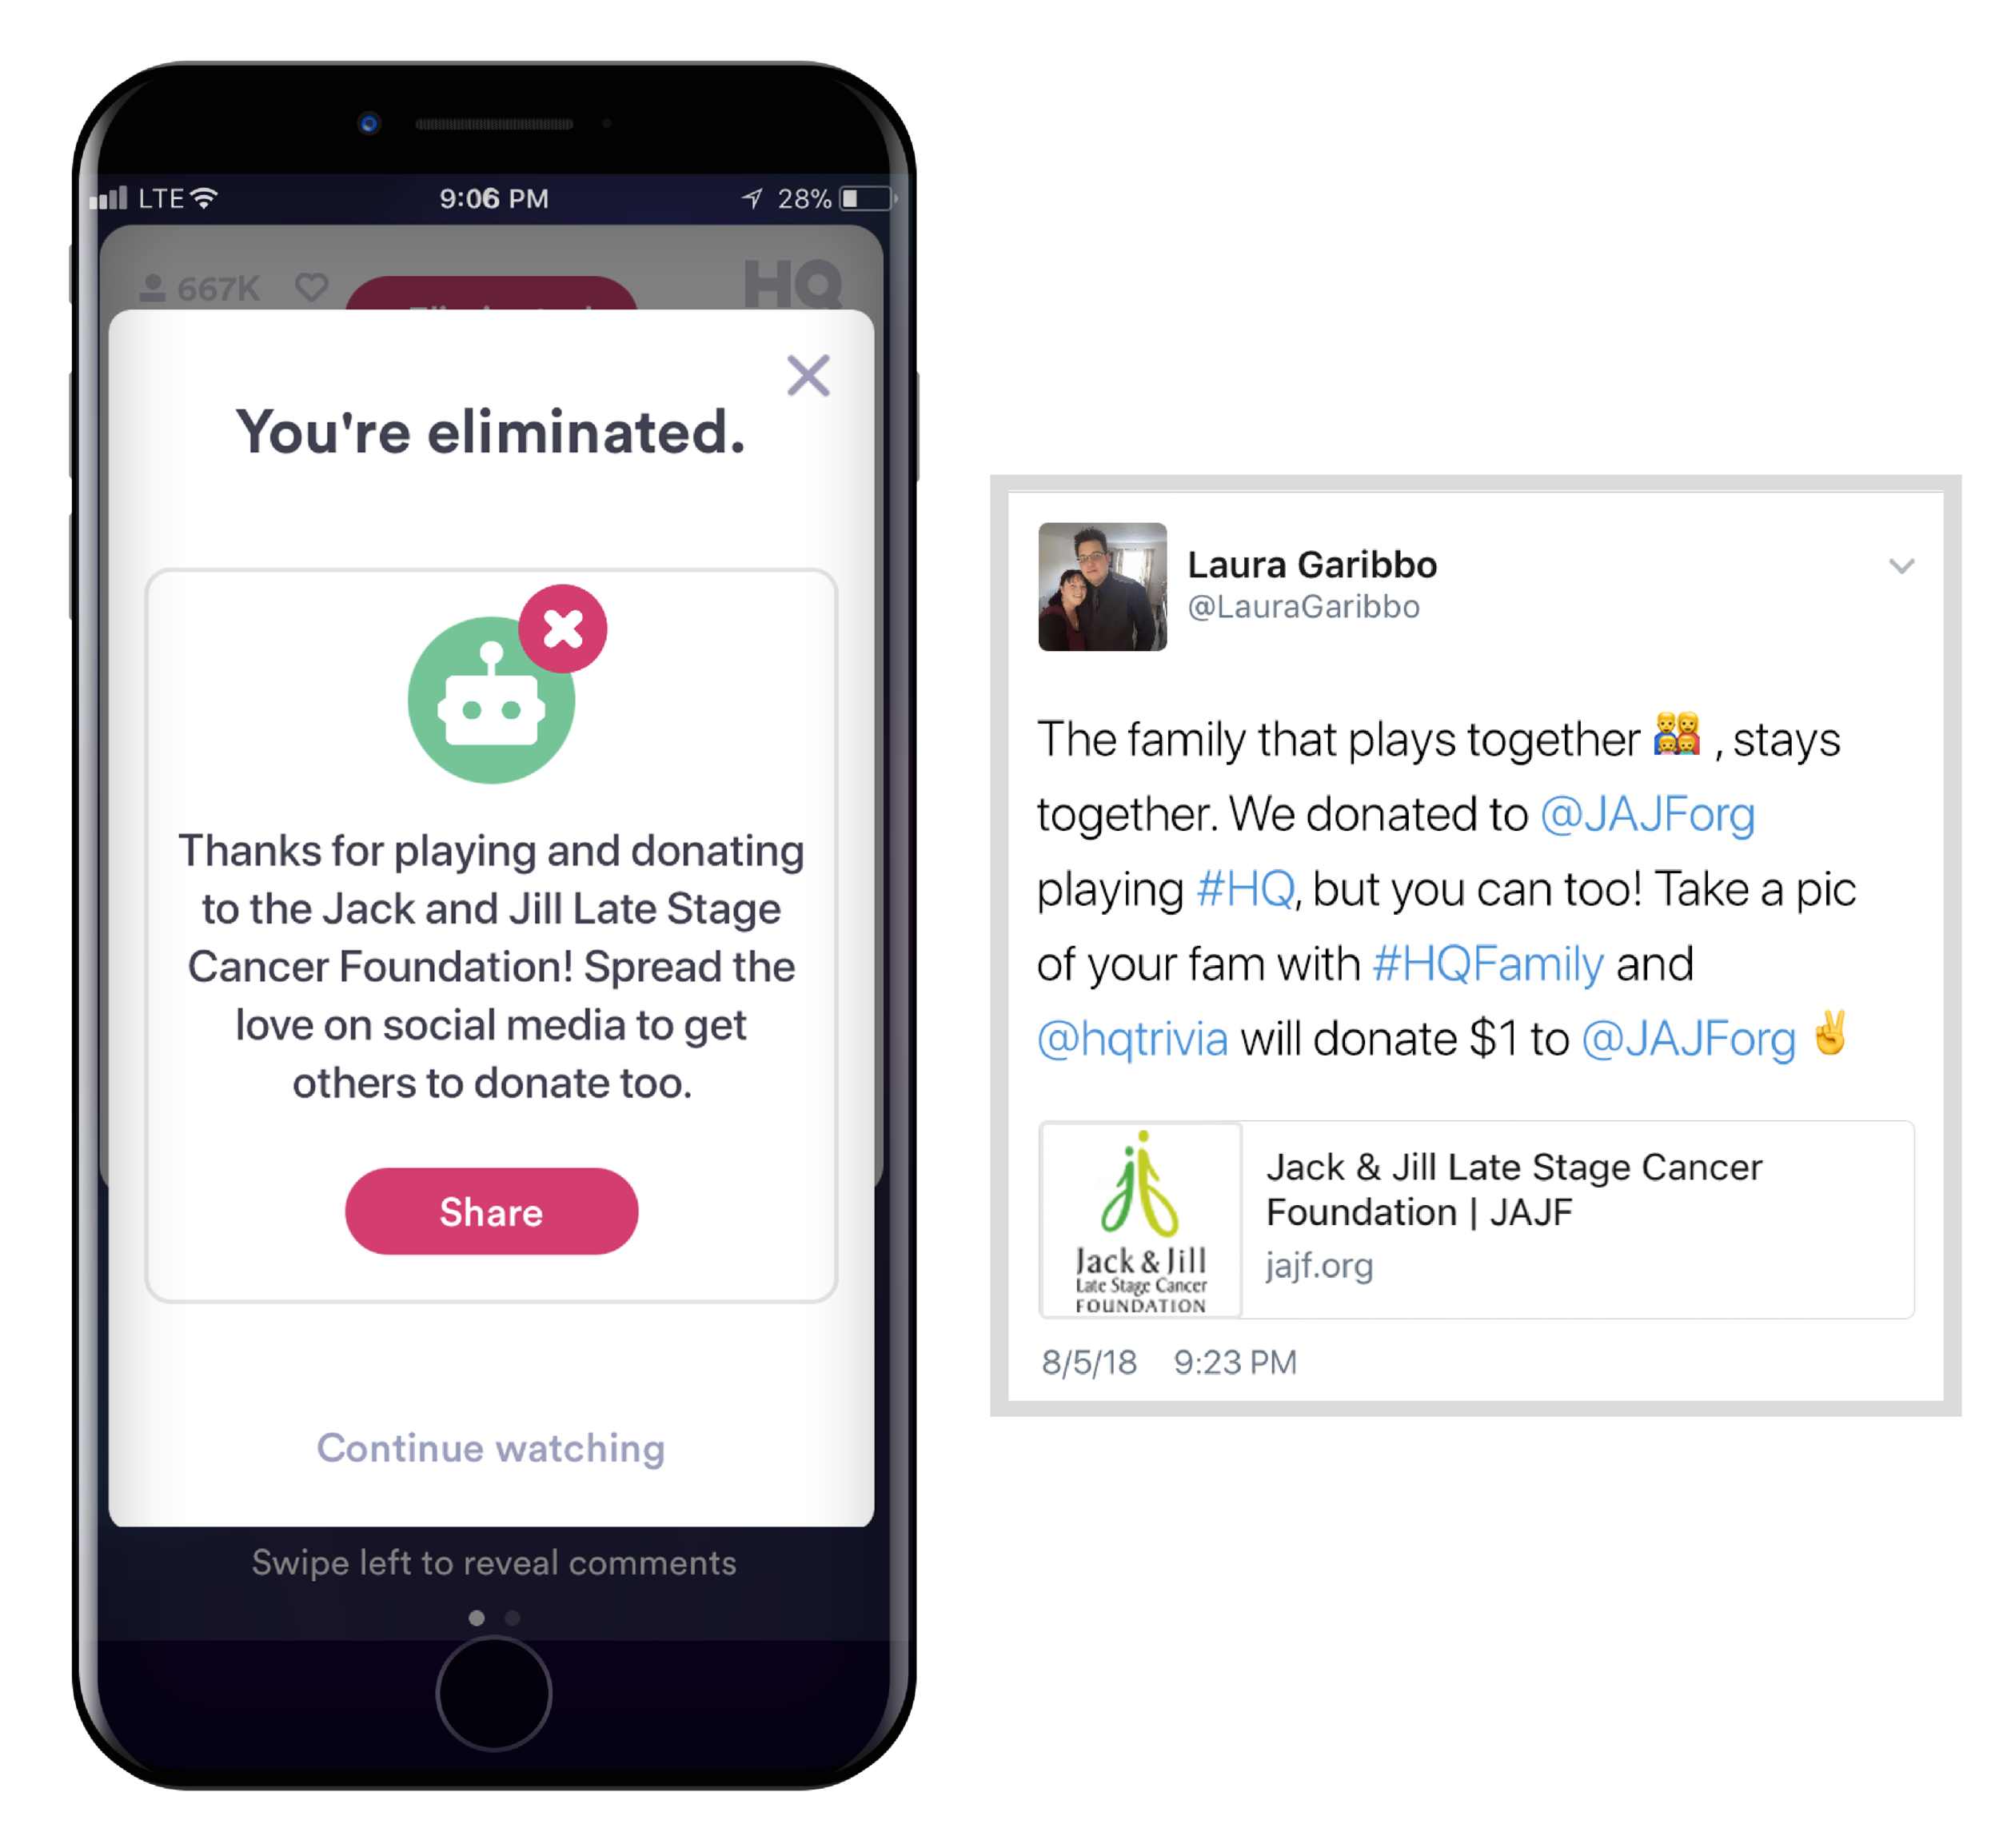 After the Game - If you donated and got eliminated, a pop-up will invite you to share that you donated on social media. The Twitter app will open with a pre-filled tweet about how HQ will donate $1 to JAJF if you share a pic of your family with #HQFamily.